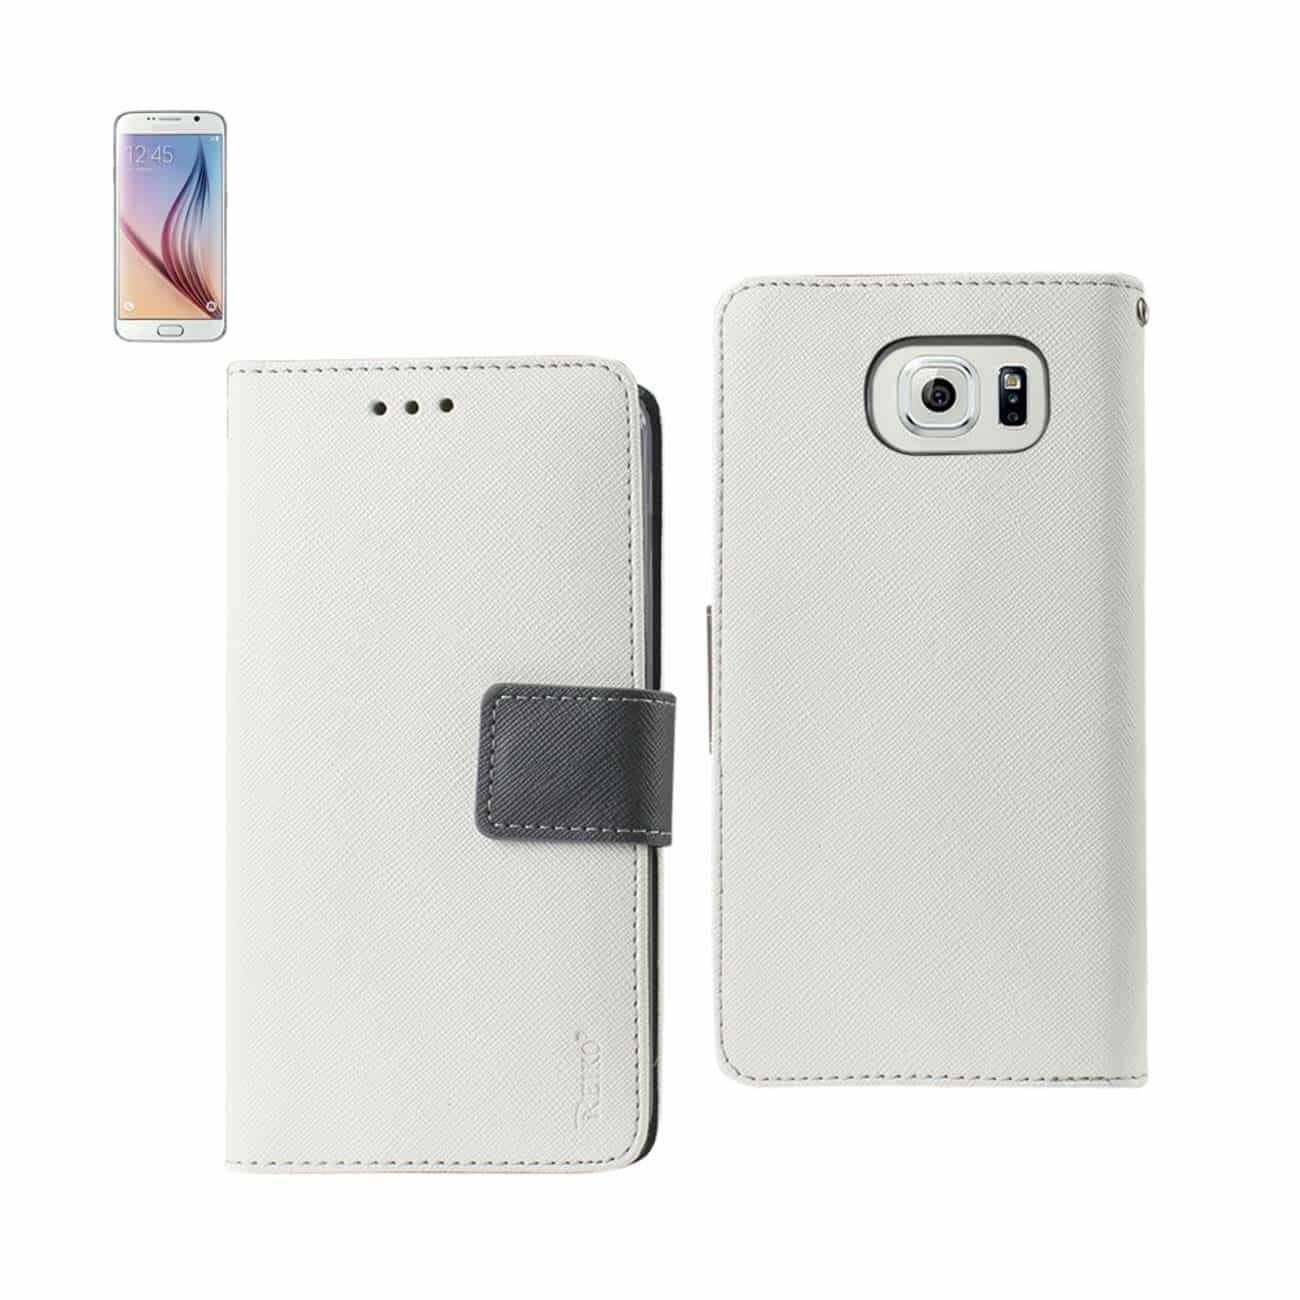 SAMSUNG GALAXY S6 3-IN-1 WALLET CASE IN WHITE